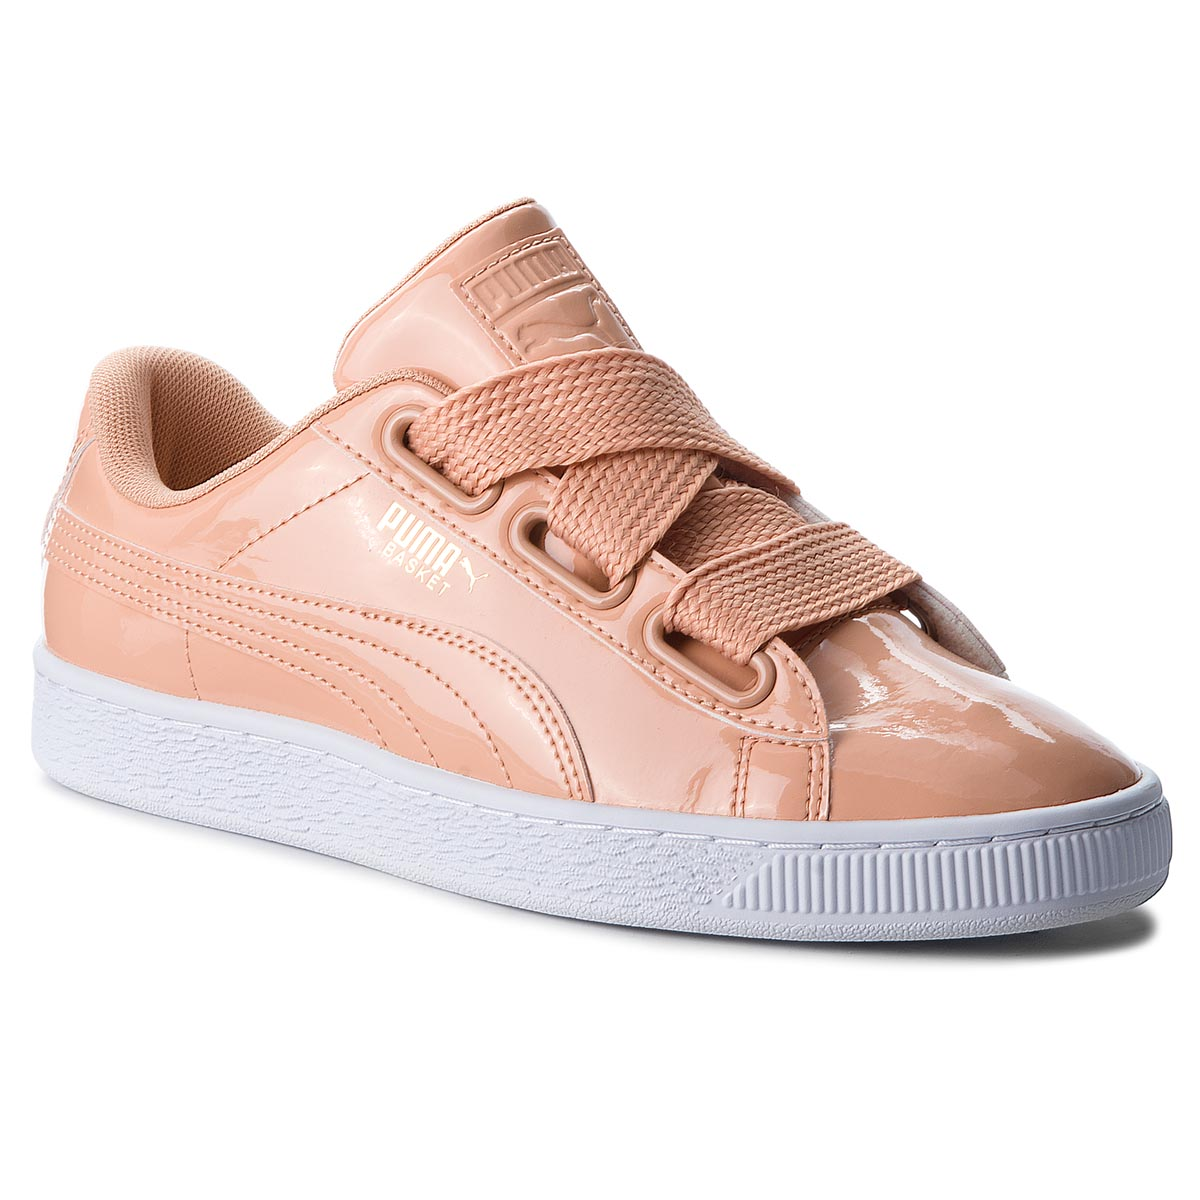 the best attitude 800b5 c2211 Sneakers PUMA - Basket Heart Patent 363073 16 Dusty Coral Dusty Coral